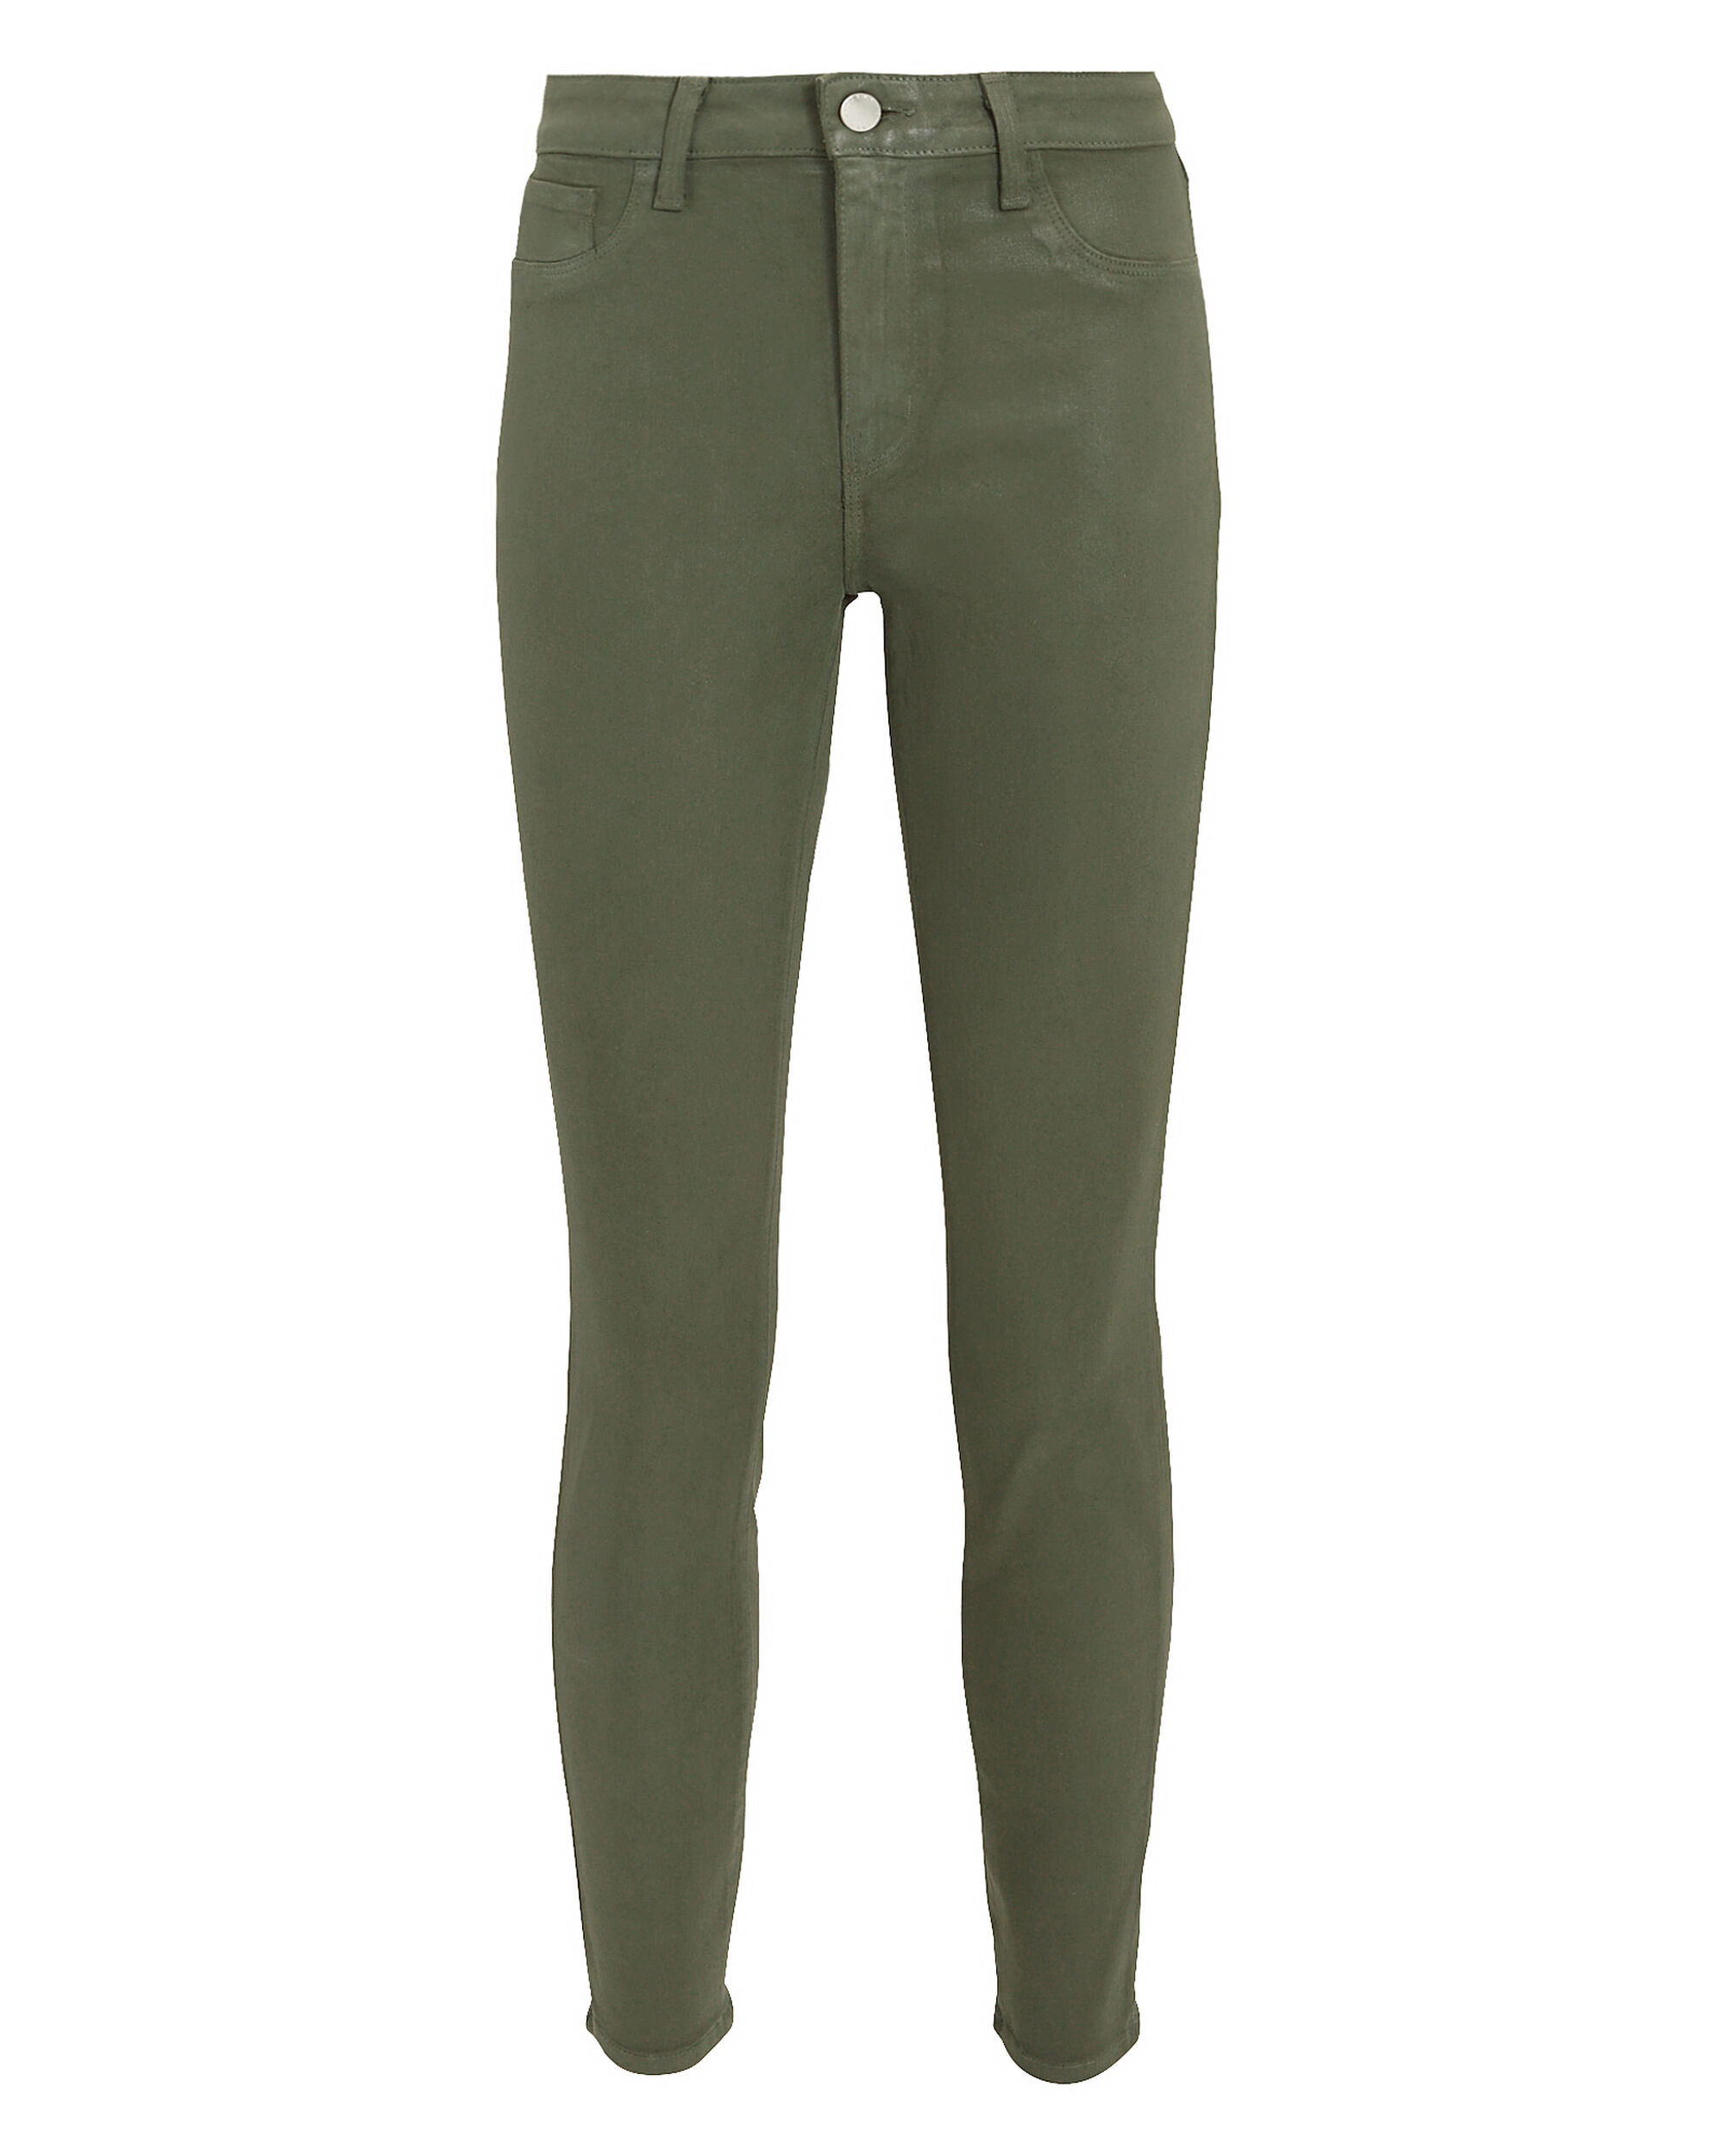 Margot Green Coated High-Rise Ankle Skinny Jeans, GREEN, hi-res